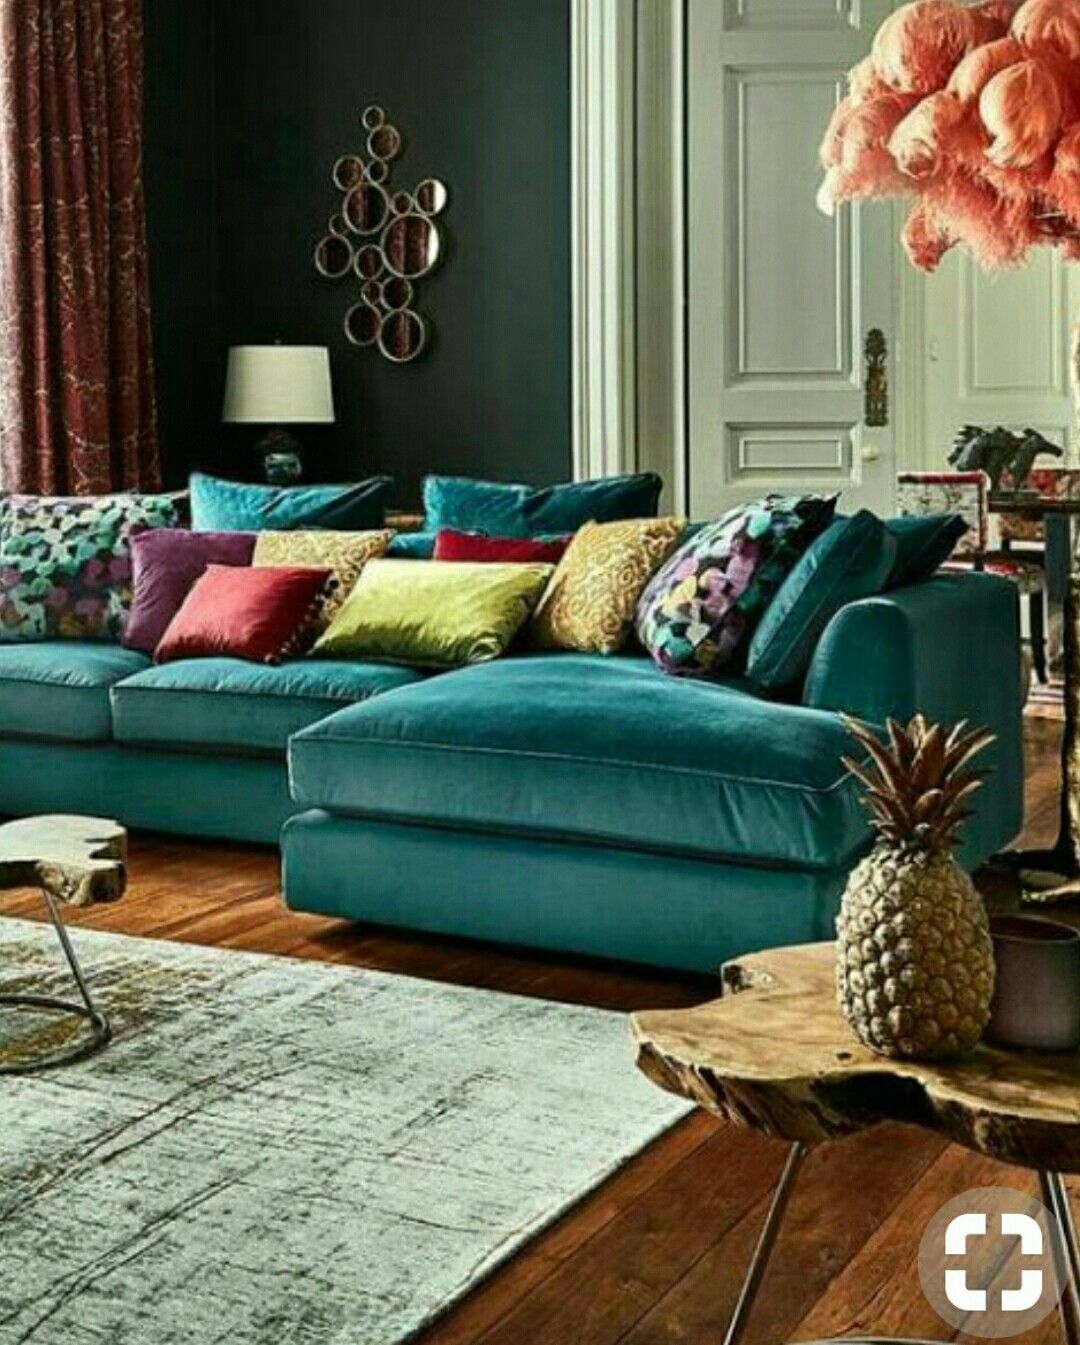 Love The Teal Velvet Sectional Couch This Has A Upscale Boho Feel